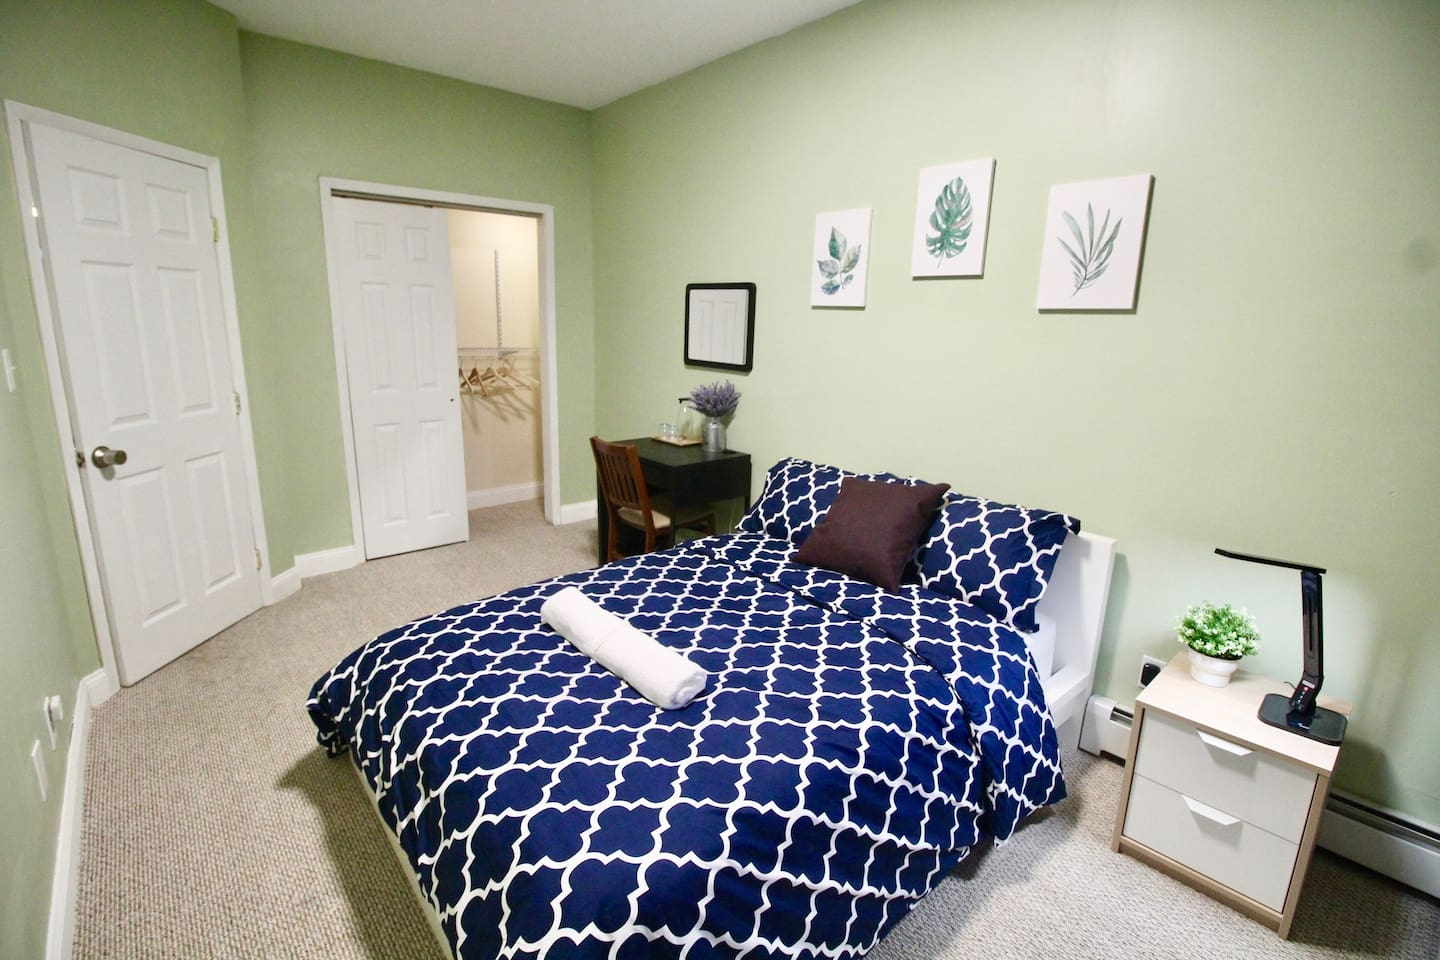 Beautiful Bedroom with Full Size Bed, Workplace Desk, Lamp and Big Closet